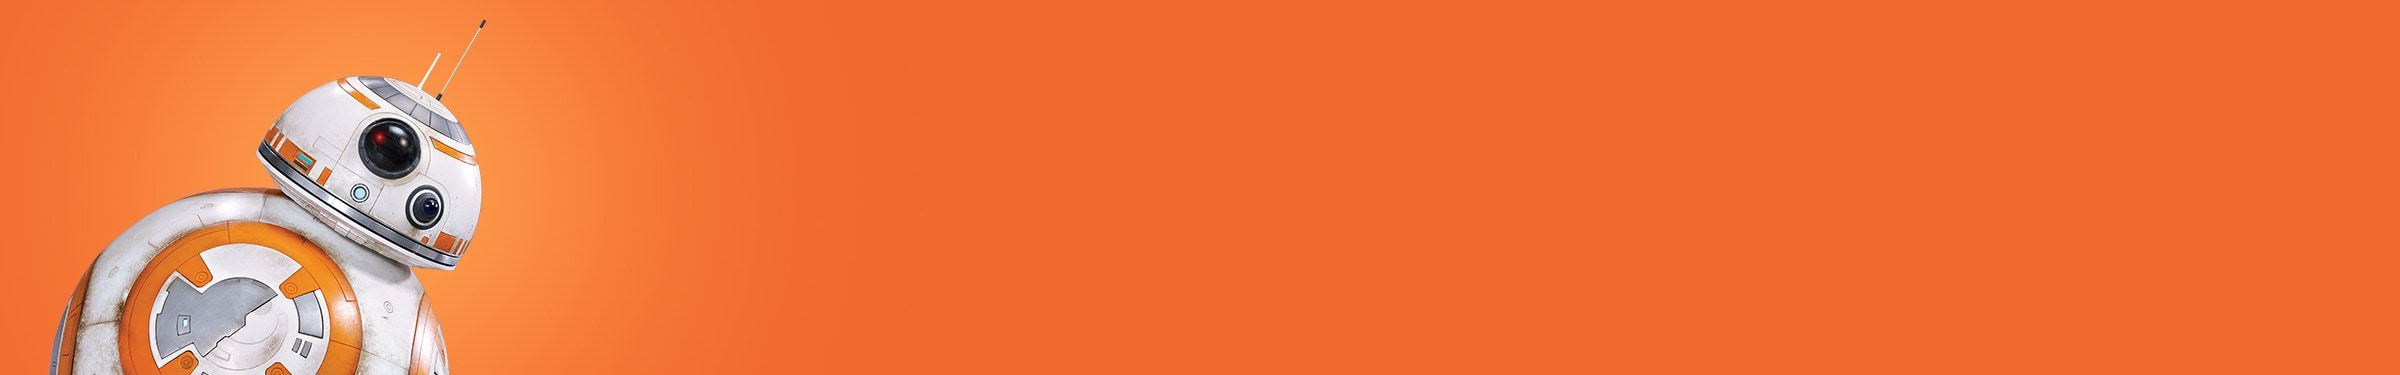 Shop Star Wars - Products We Love - More Star Wars Products for Kids